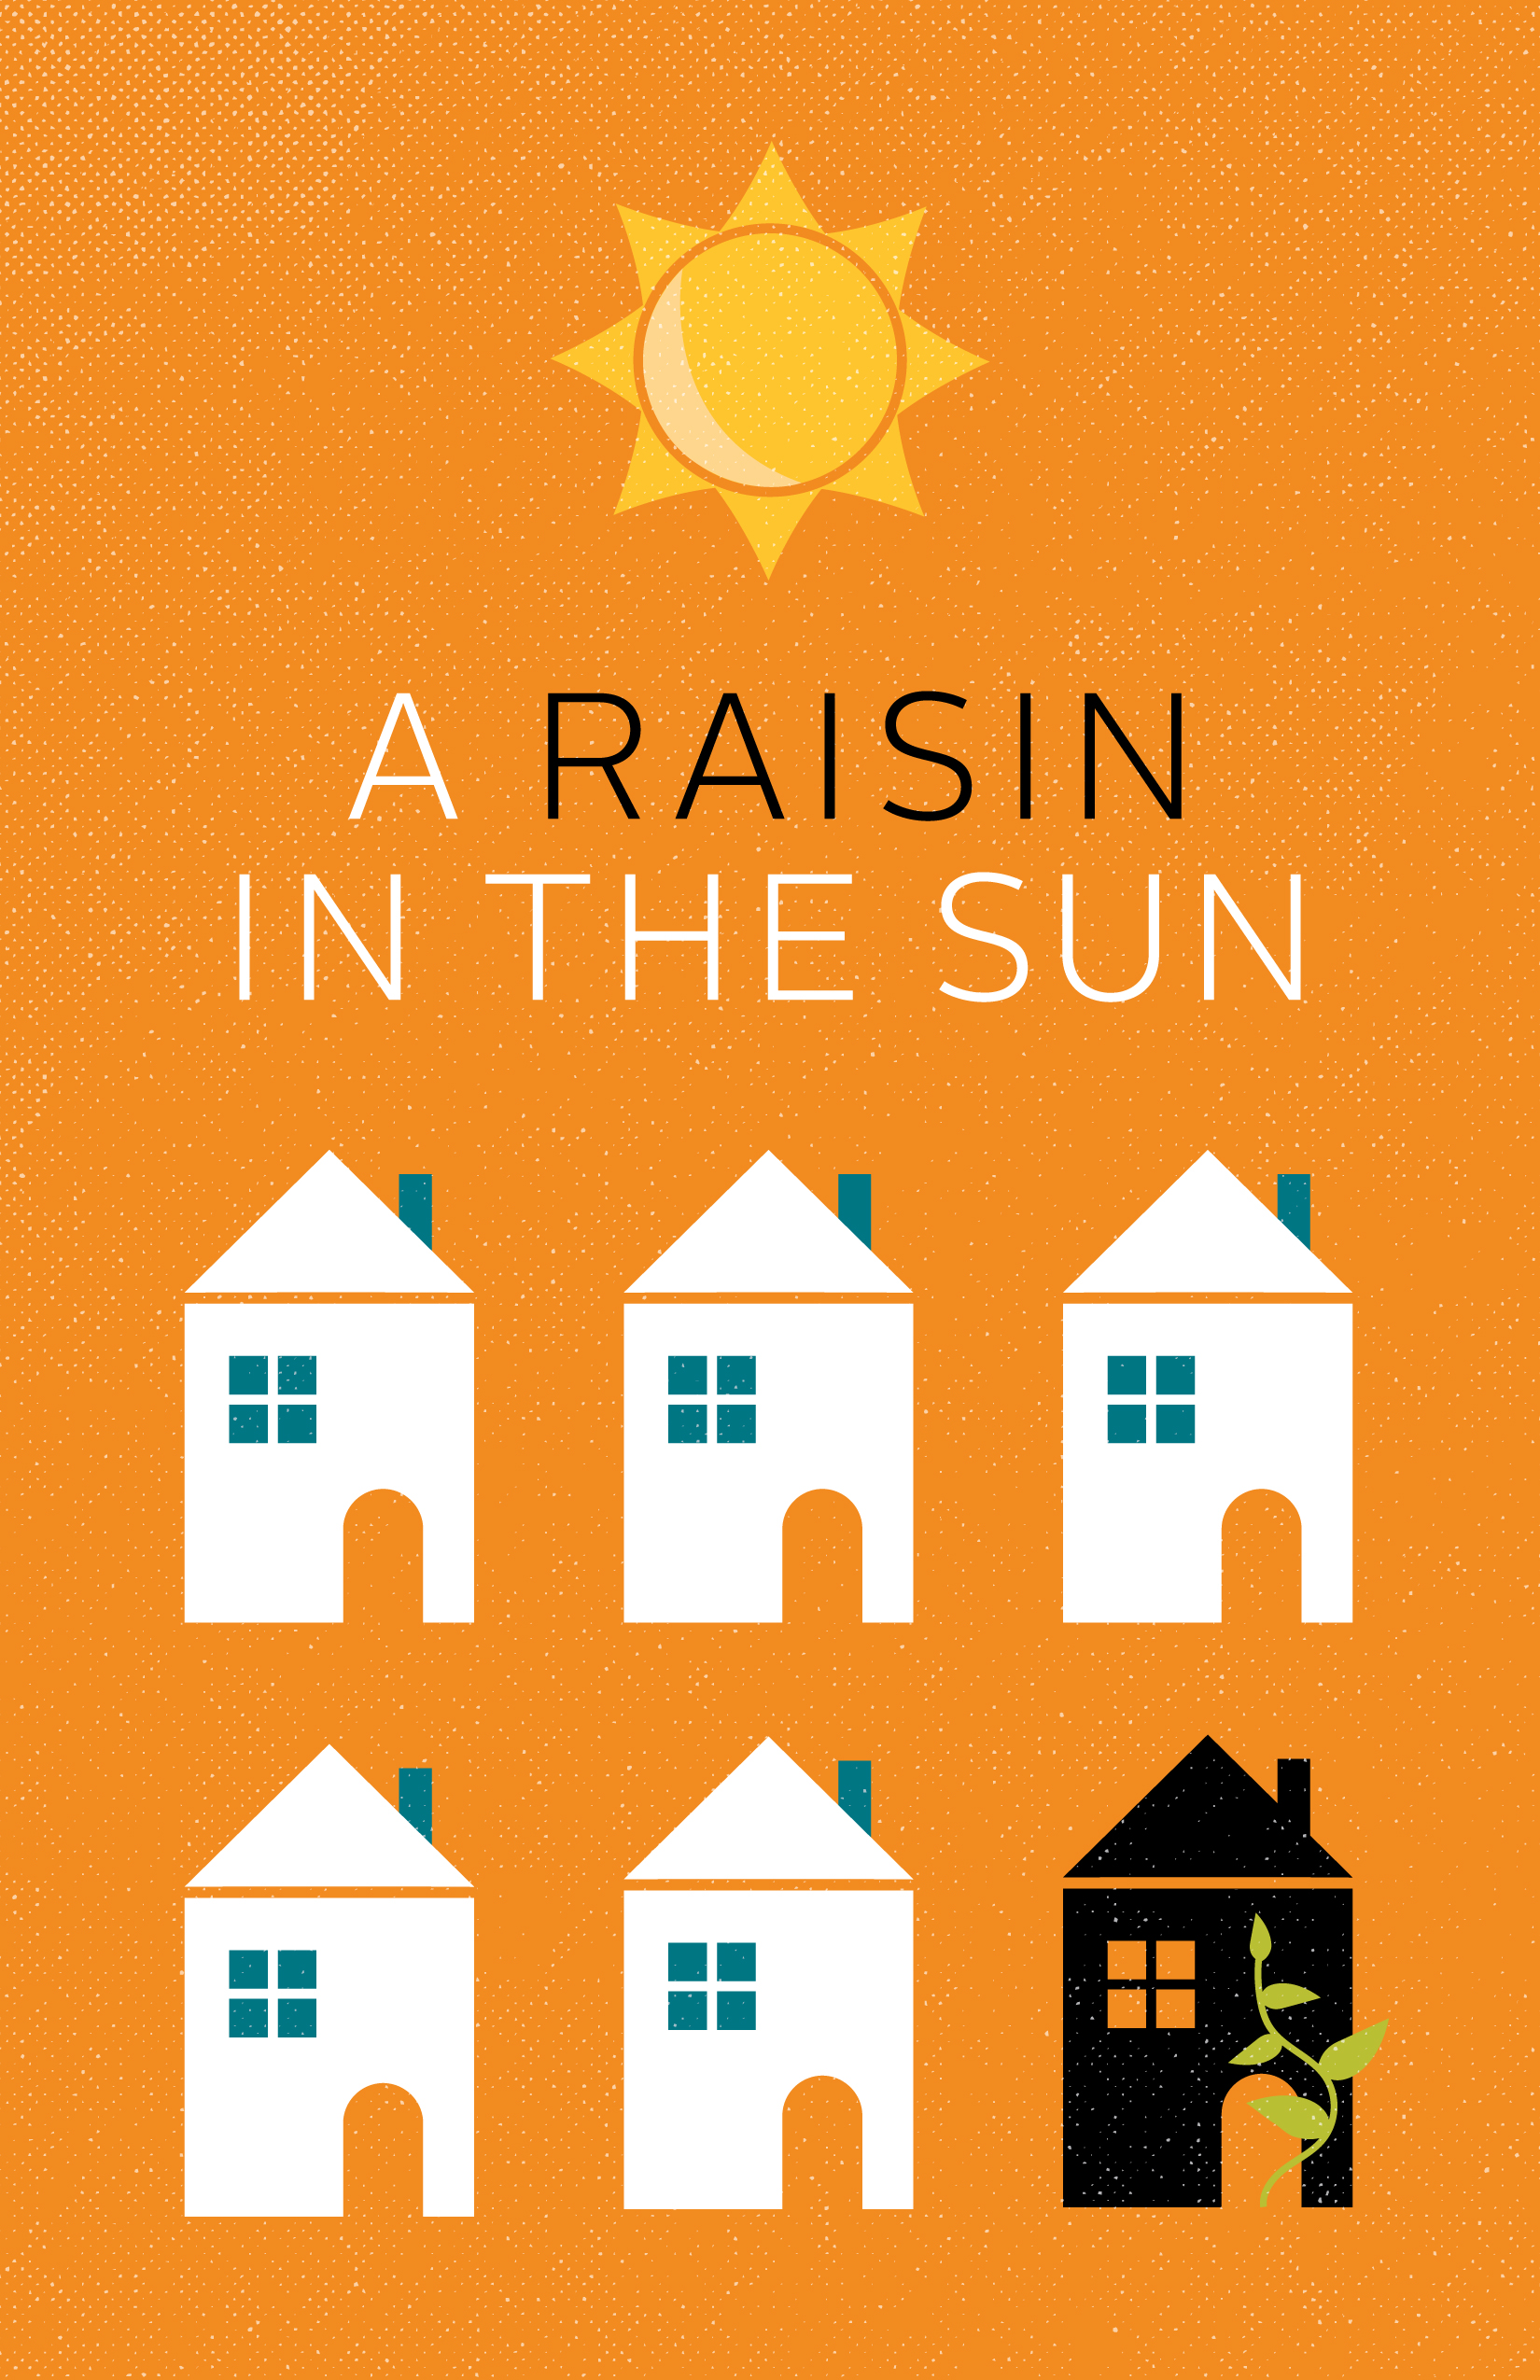 1819-09-Raisin-in-the-Sun-Show-Image-Vertical.jpg